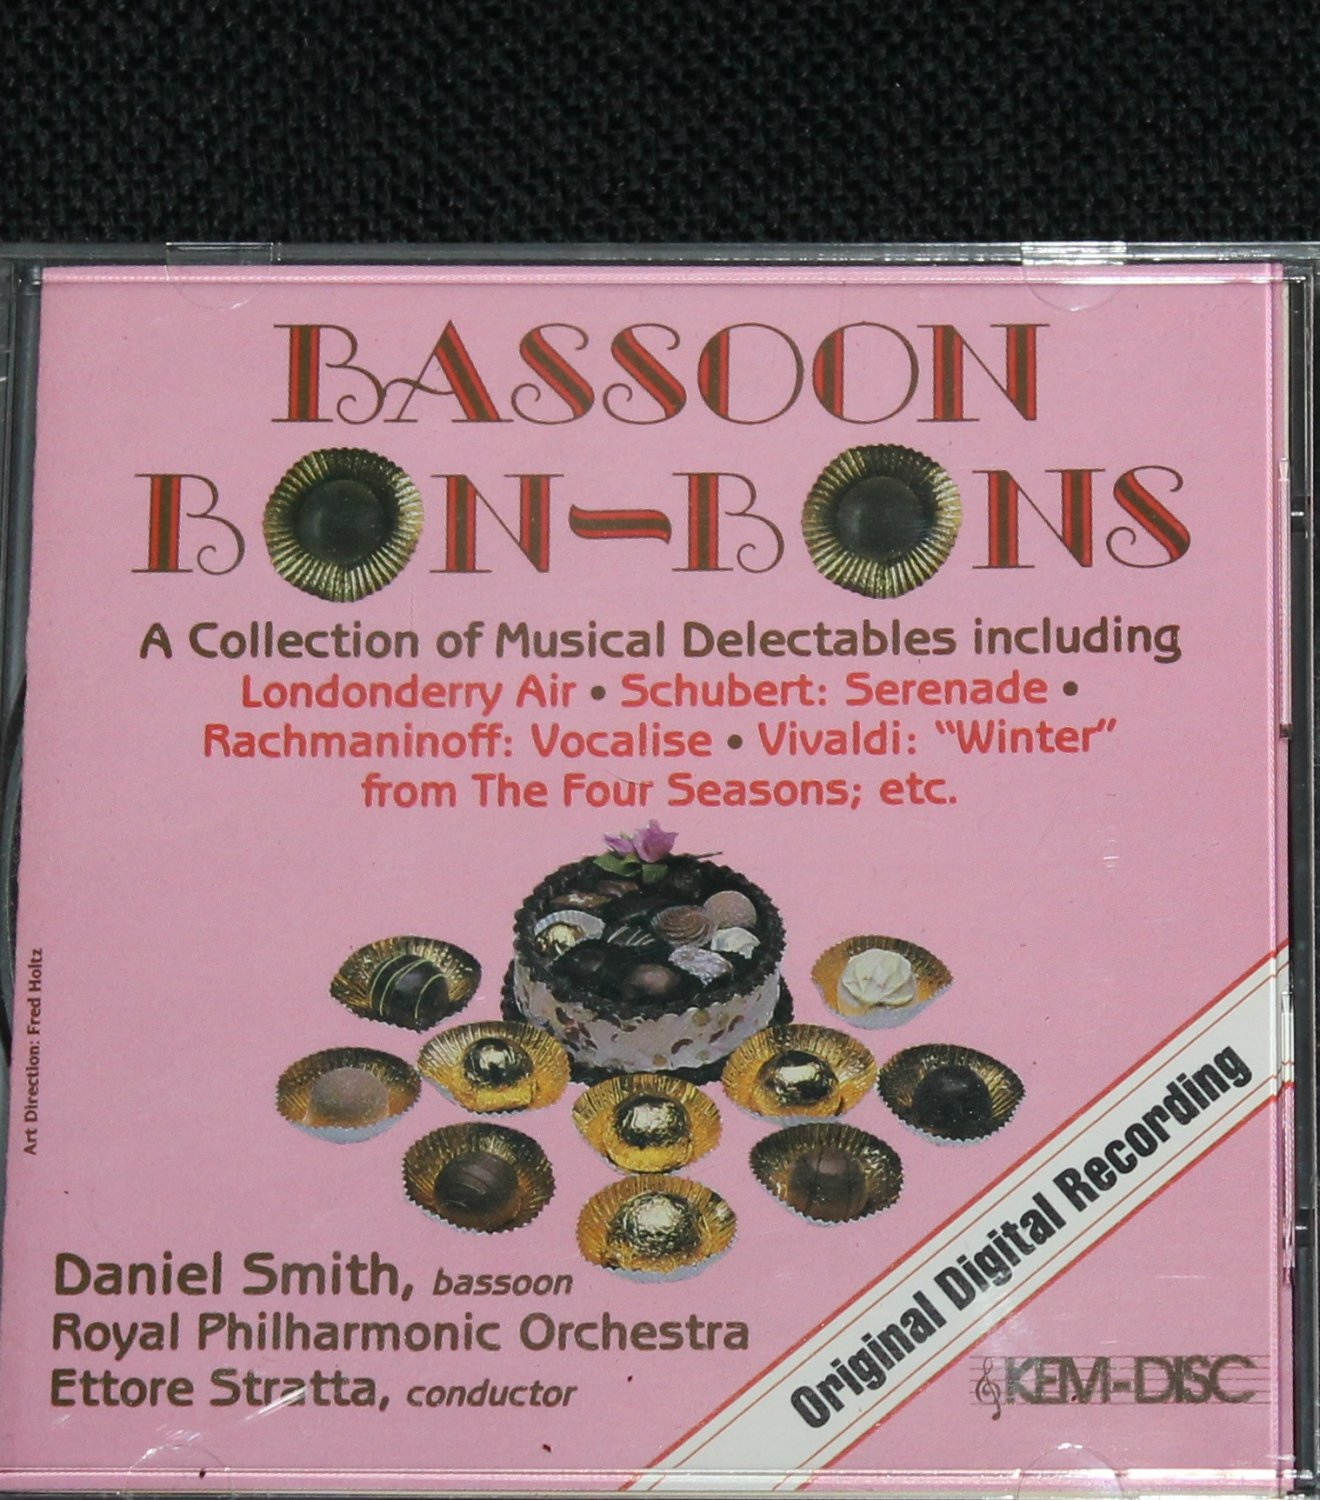 Bassoon Bon-Bons music cd